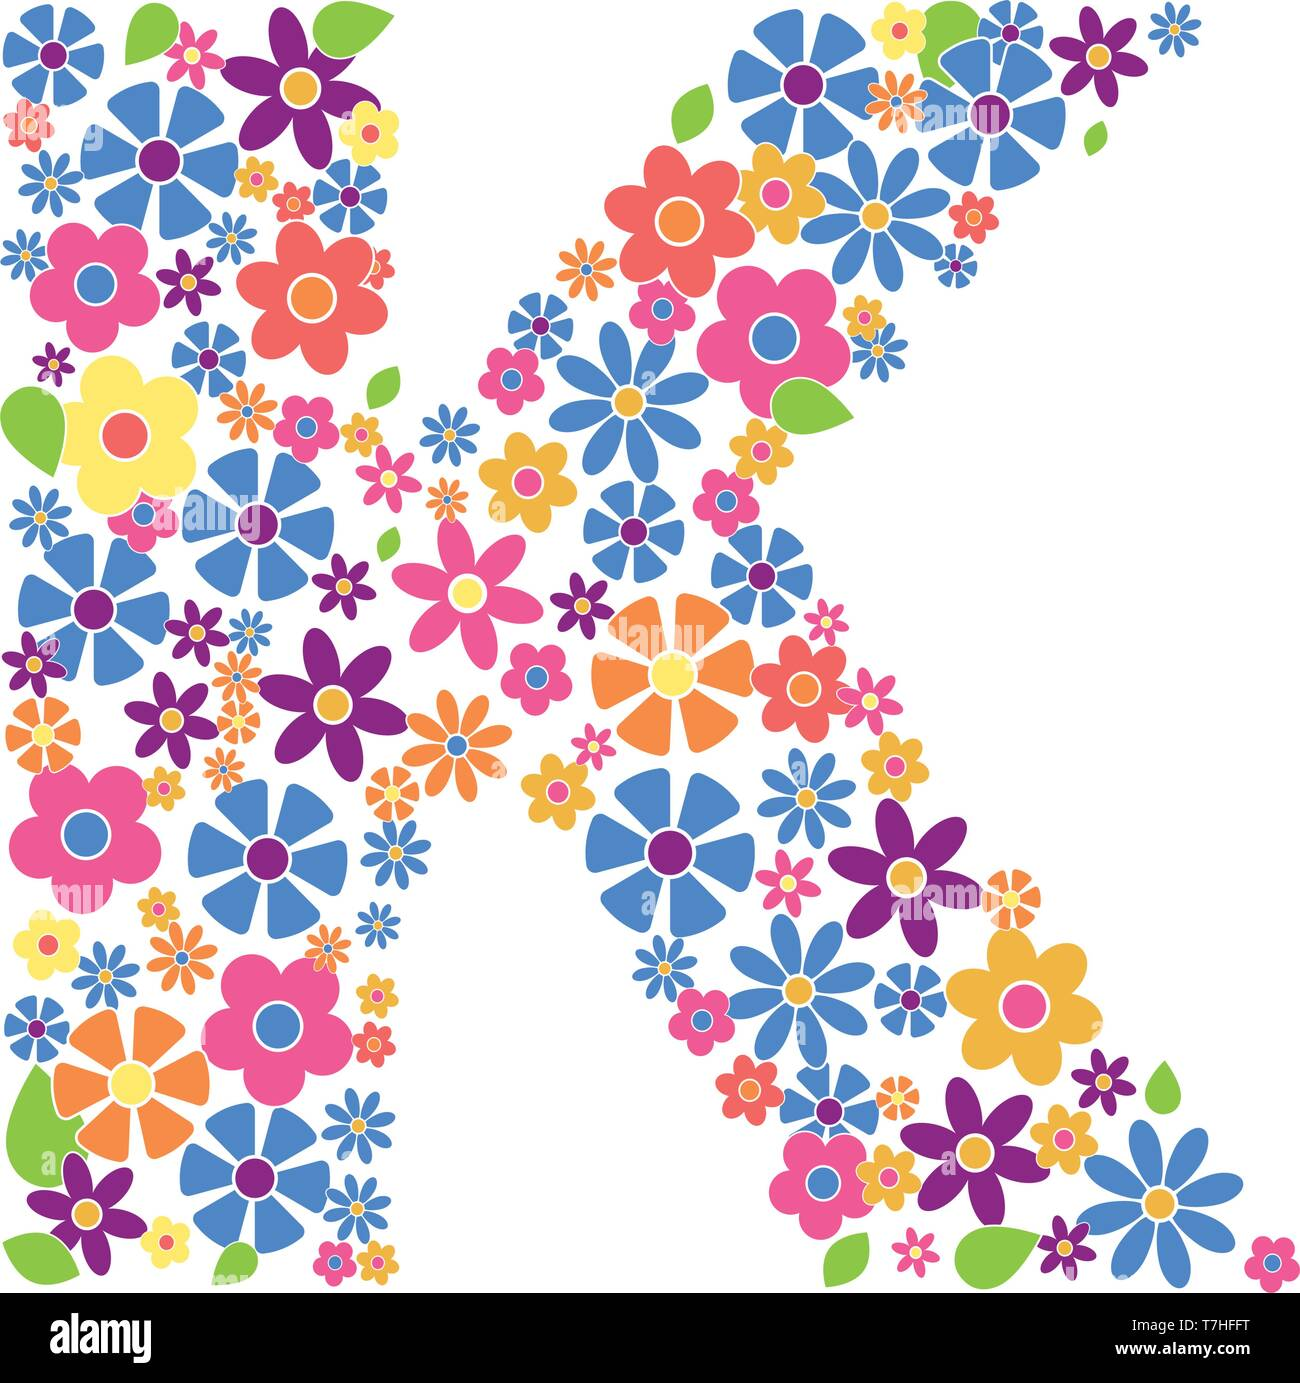 Letter K filled with a variety of colorful flowers isolated on white background vector illustration - Stock Image